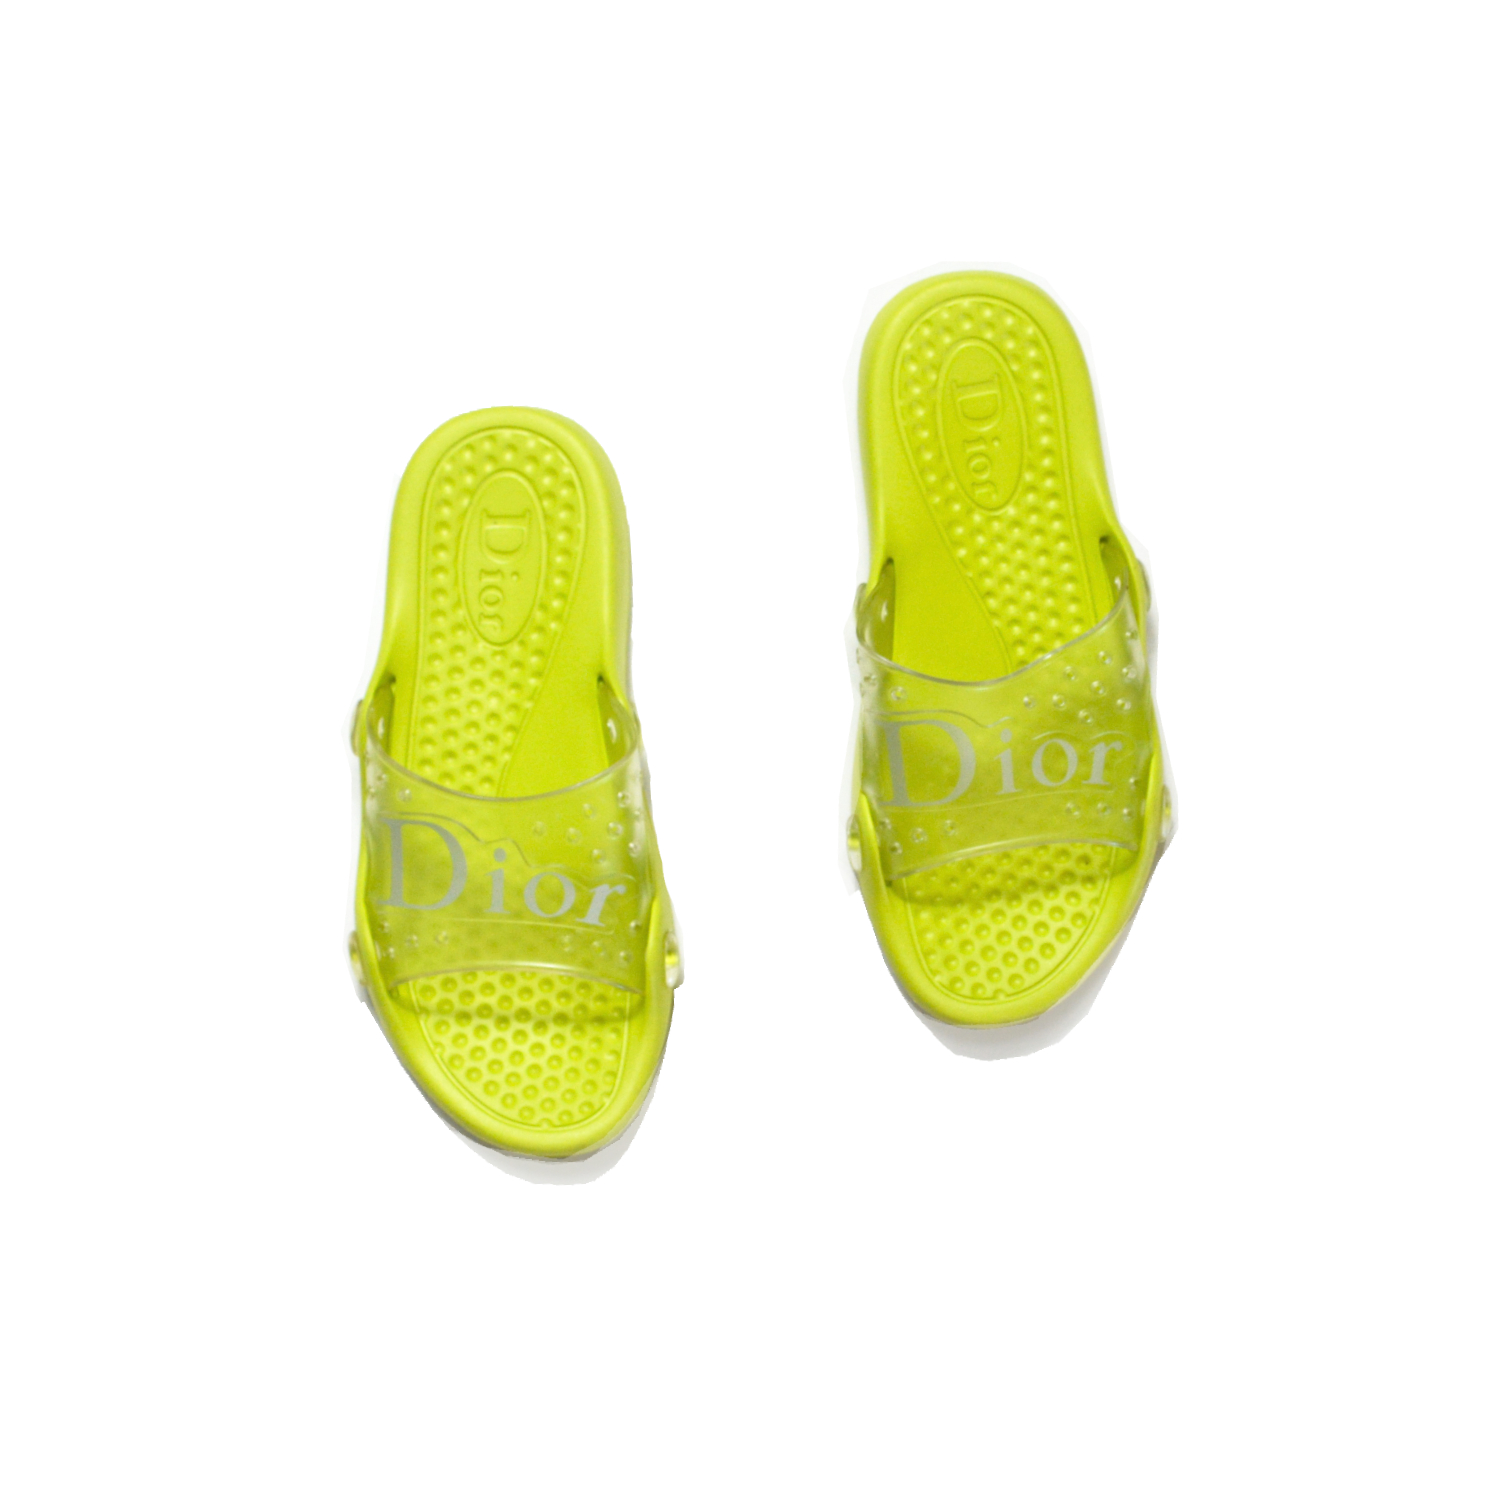 Dior Sliders in Lime Green Size 6.5 | NITRYL